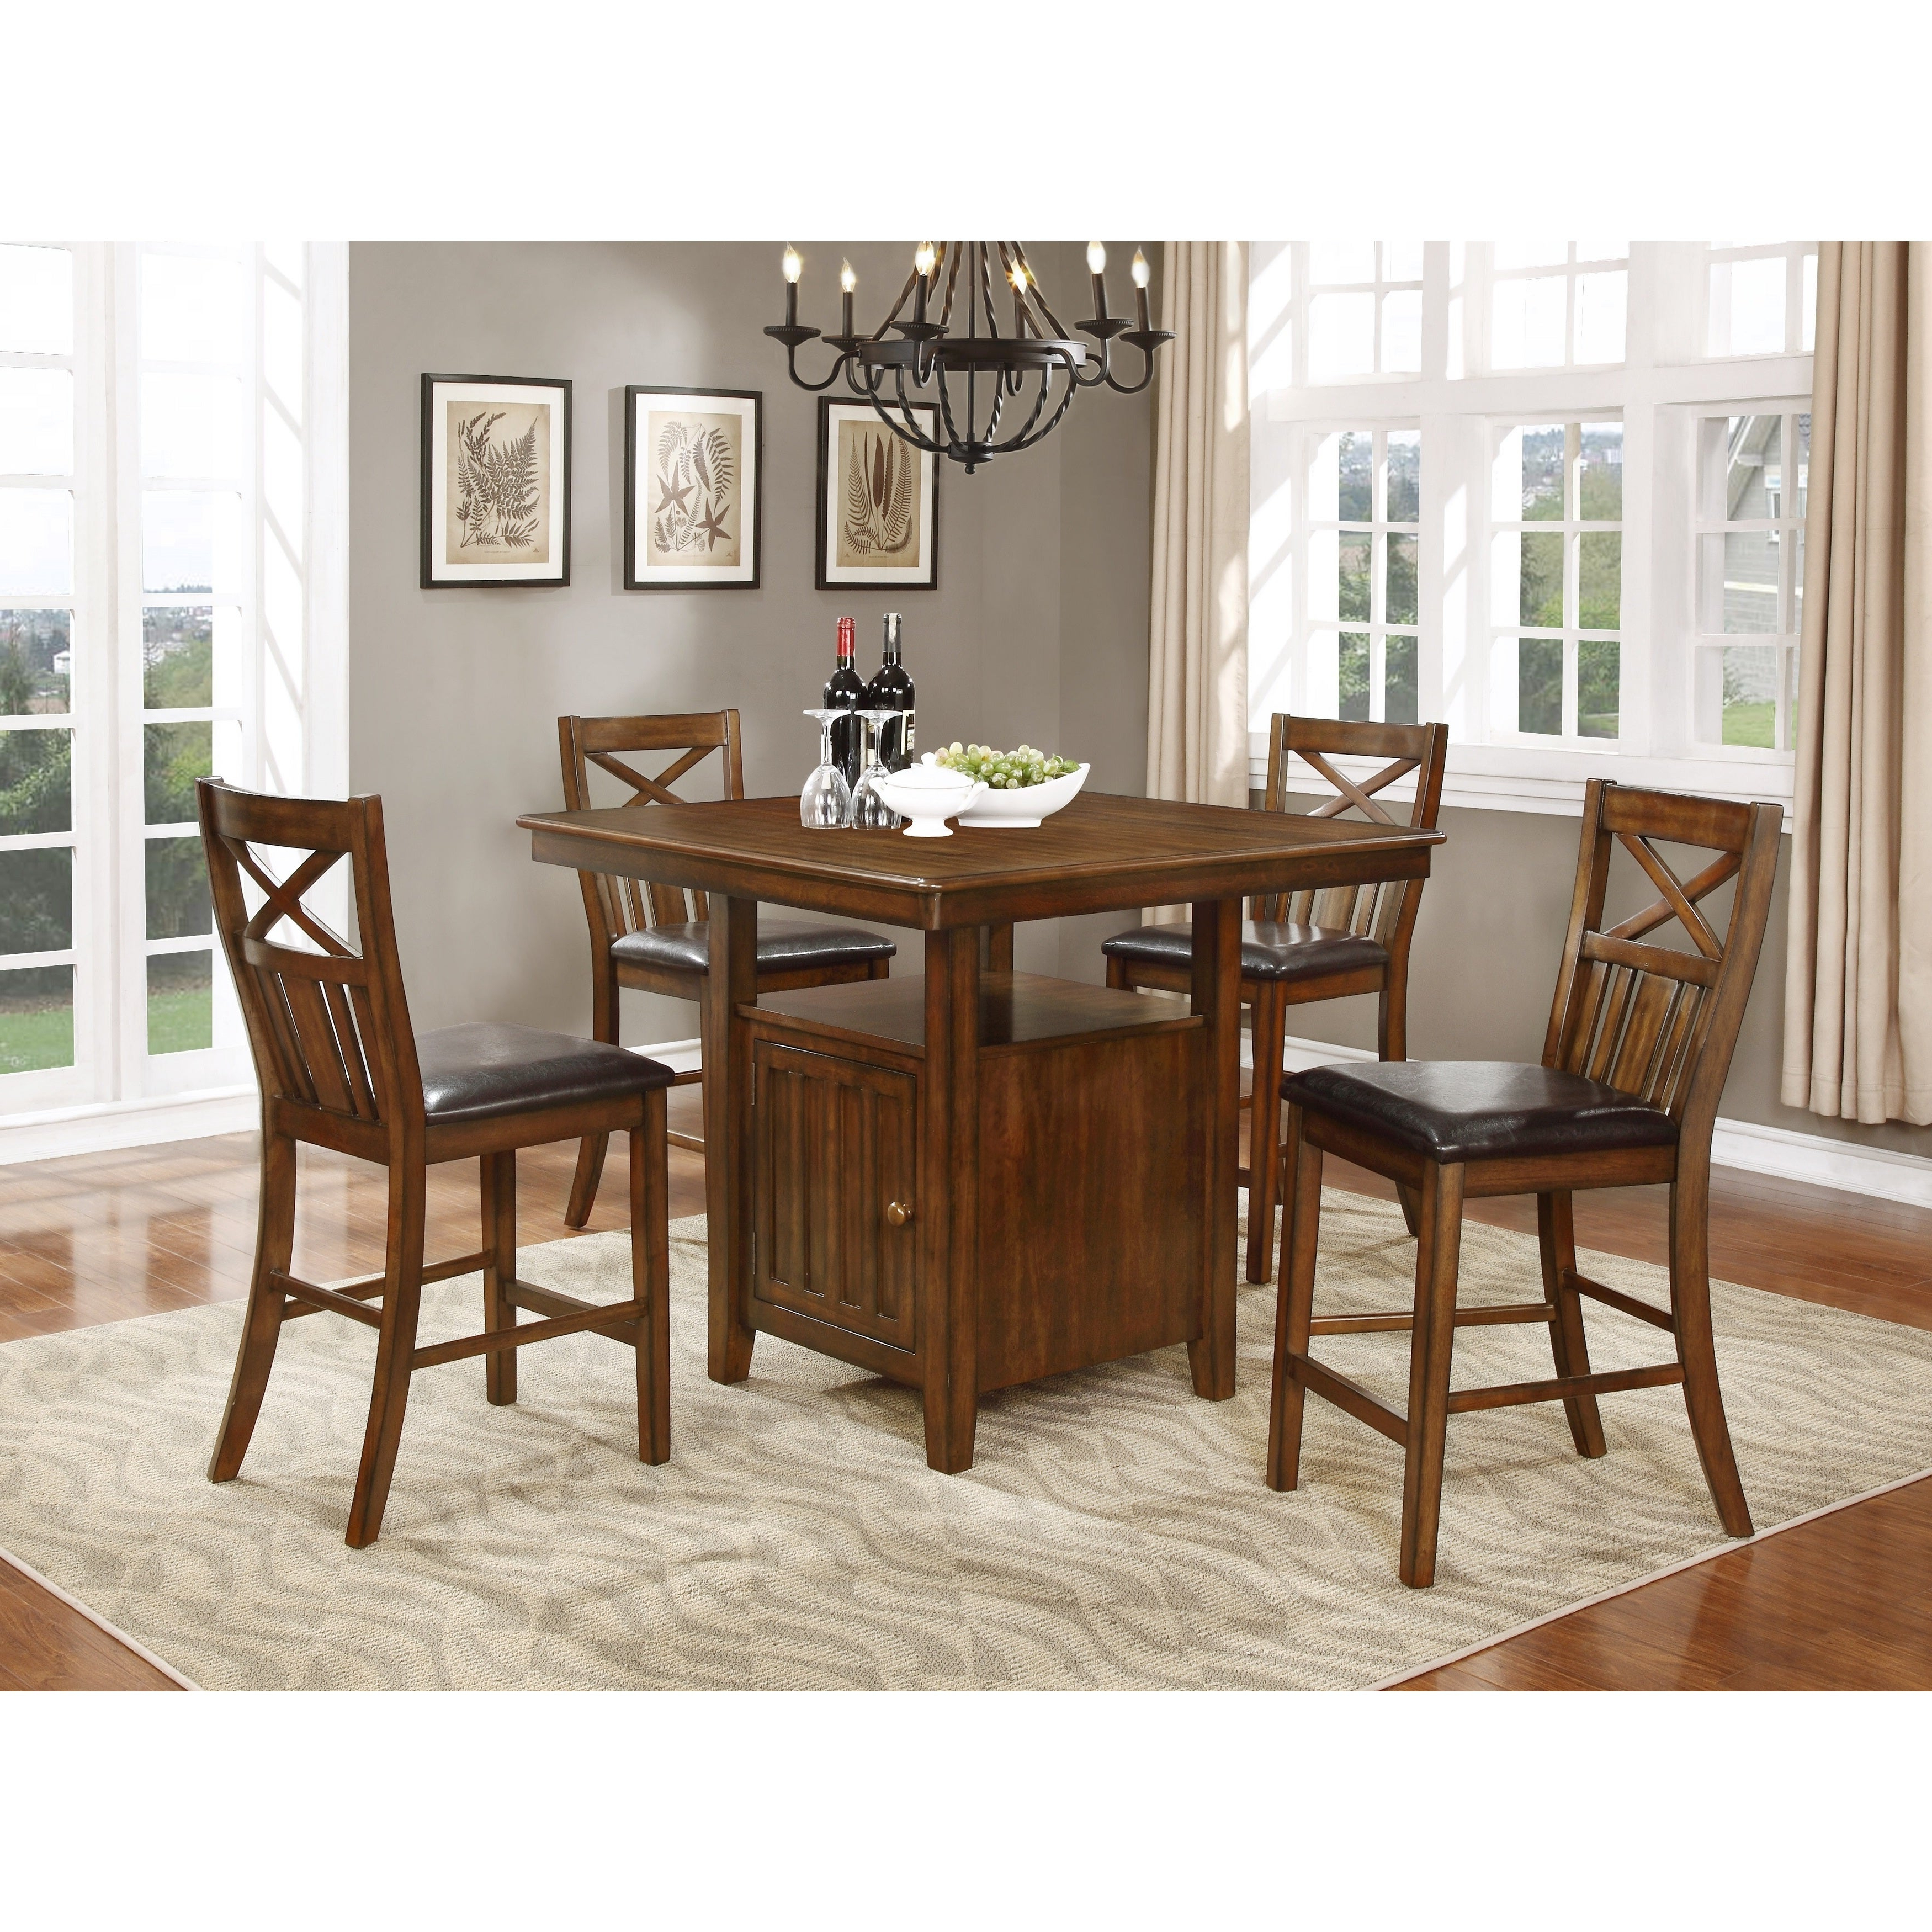 Famous Shop Bryson Cherry Brown Counter Height Dining Table Set W/ Storage With Bryson 5 Piece Dining Sets (View 5 of 25)